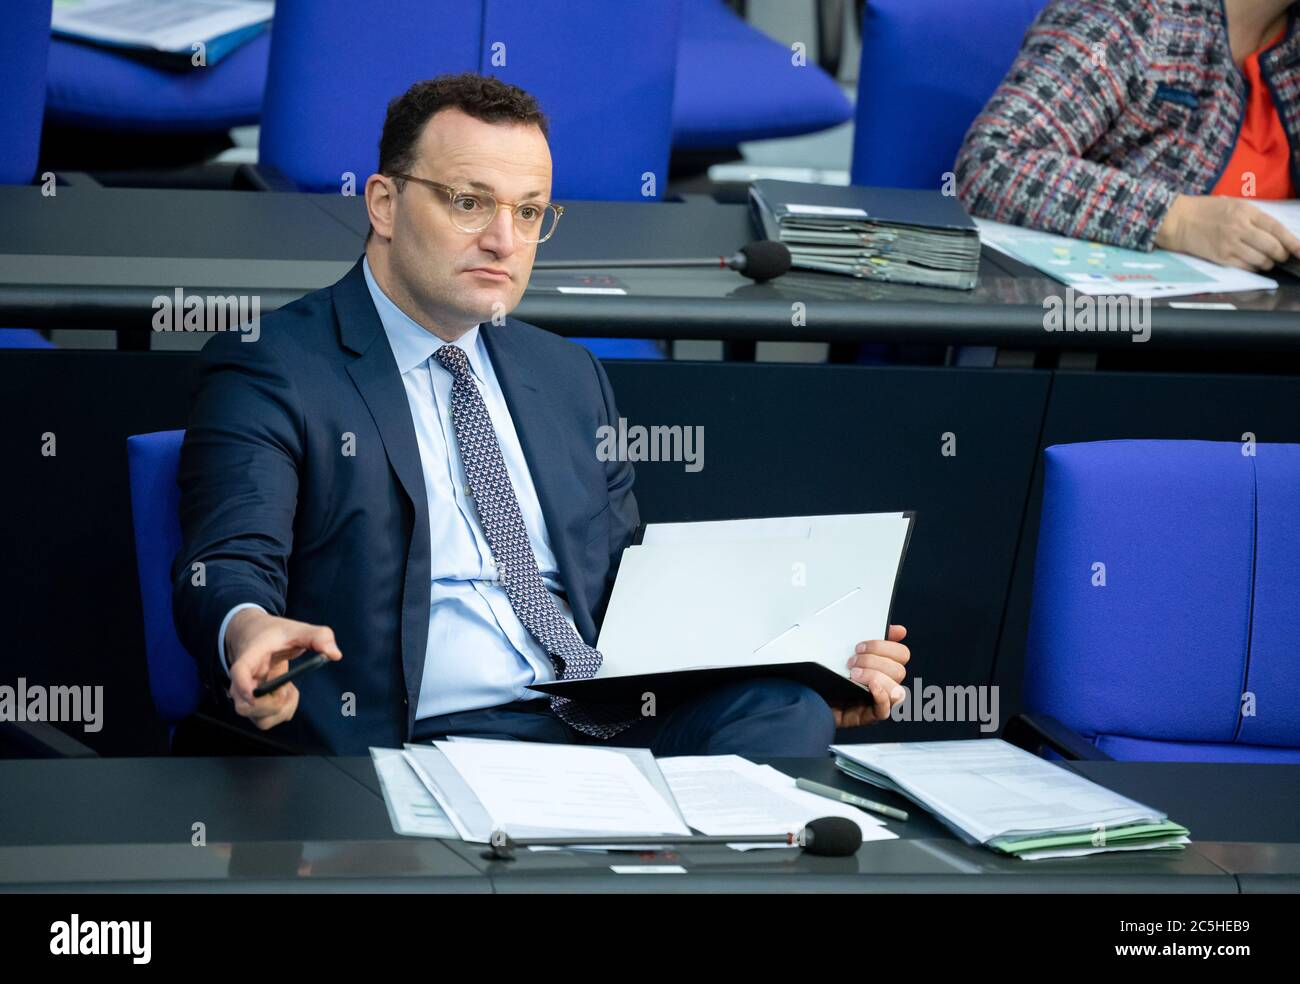 Berlin, Germany. 03rd July, 2020. Jens Spahn (CDU), Federal Minister of Health, sits in the plenary session of the German Bundestag. The main topics of the 171st session of the 19th legislative period are the adoption of the Coal Exit Act, a topical hour on the excesses of violence in Stuttgart, as well as debates on electoral law reform, the protection of electronic patient data, the welfare of farm animals and the German chairmanship of the UN Security Council. Credit: Bernd von Jutrczenka/dpa/Alamy Live News Stock Photo